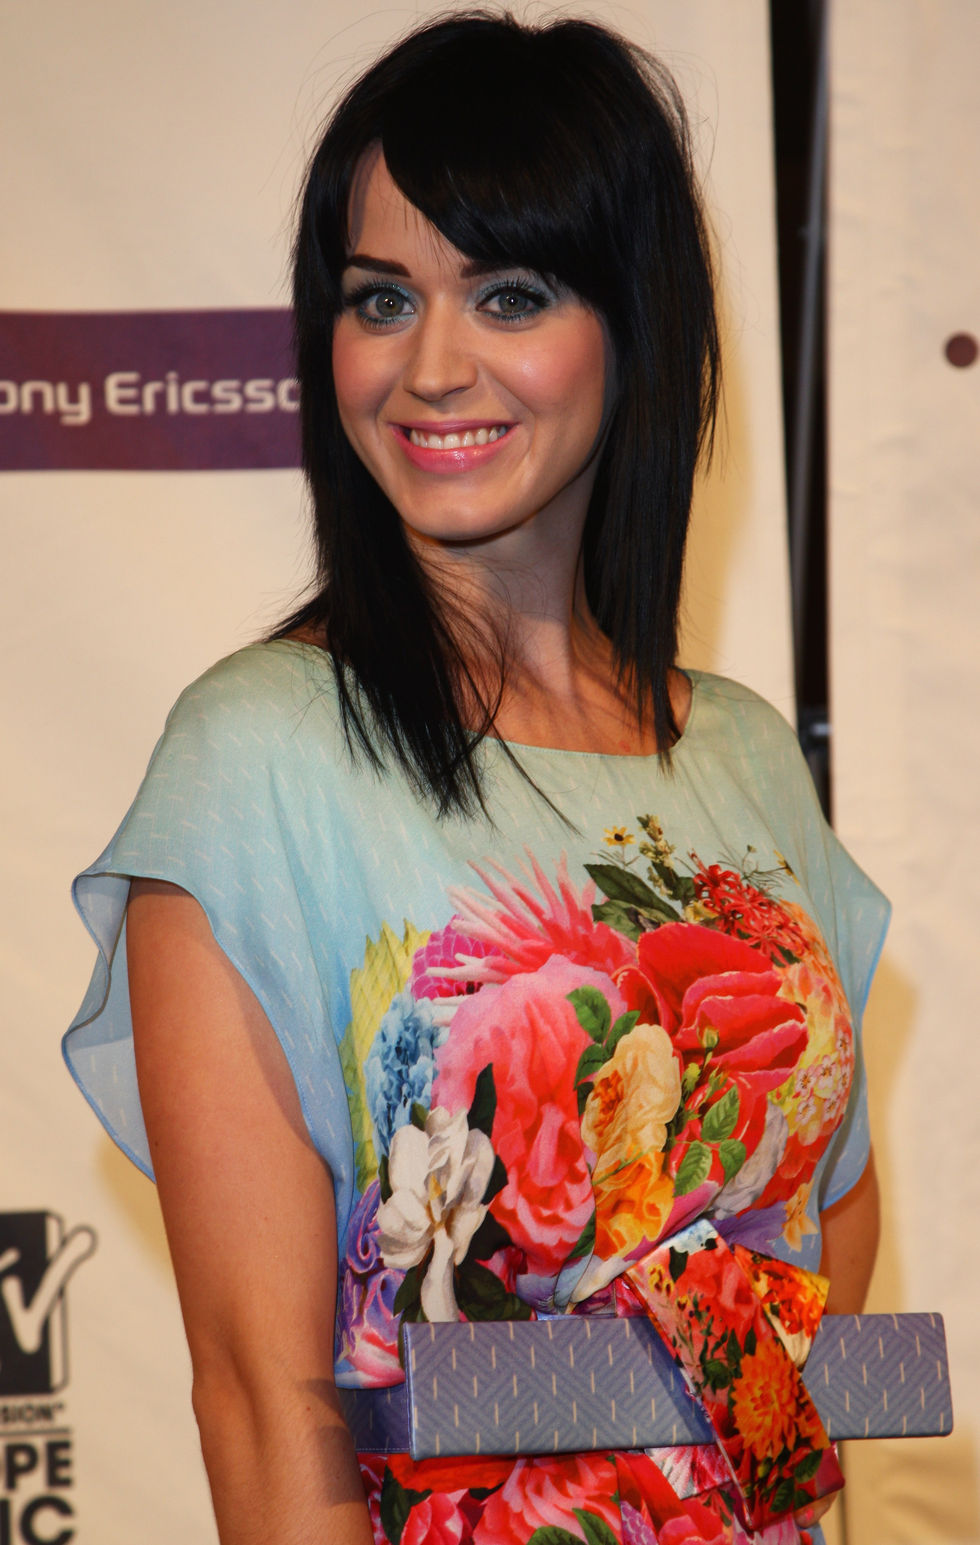 katy-perry-mtv-europe-music-awards-press-conference-in-liverpool-01